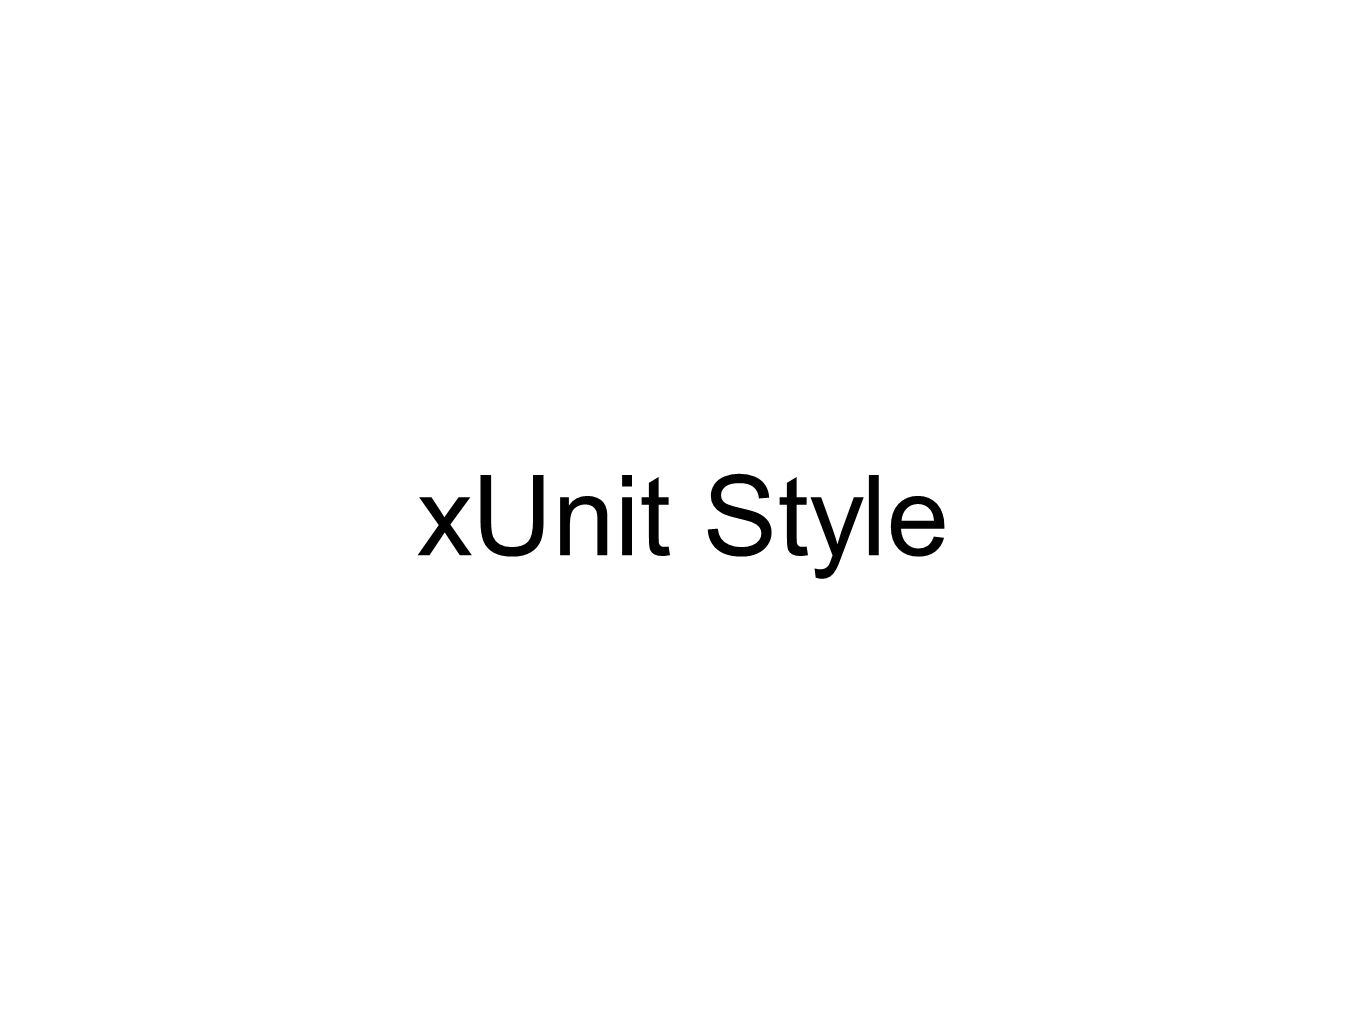 xUnit Style